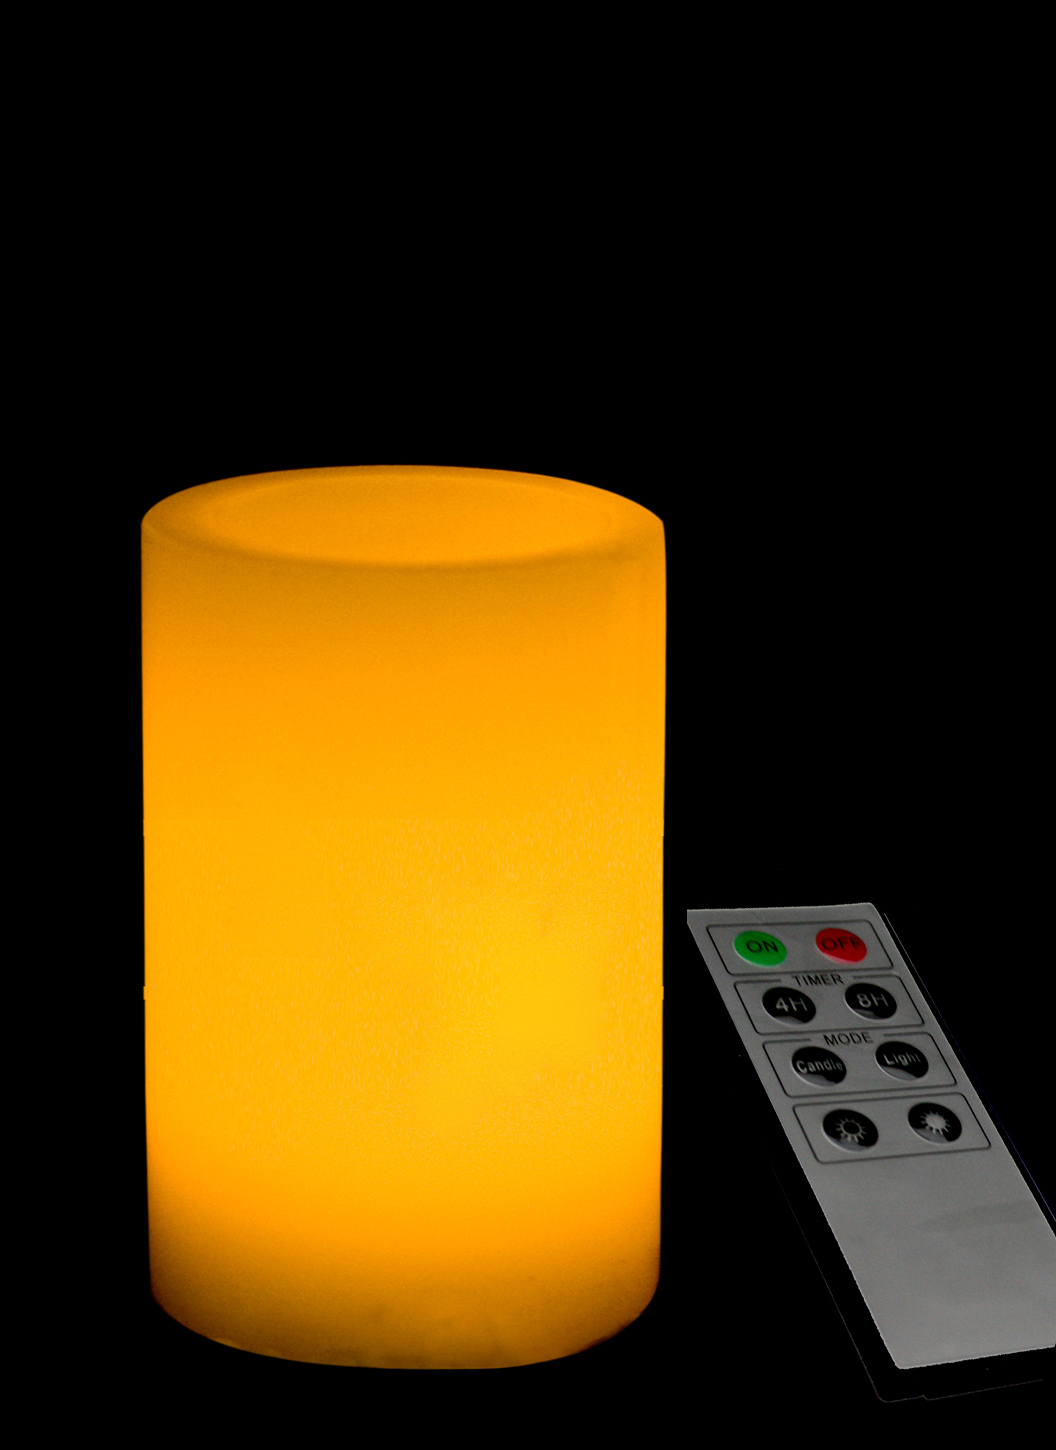 5 Inch Flameless Remote Control Pillar Candle - Smooth Edge - Yellow